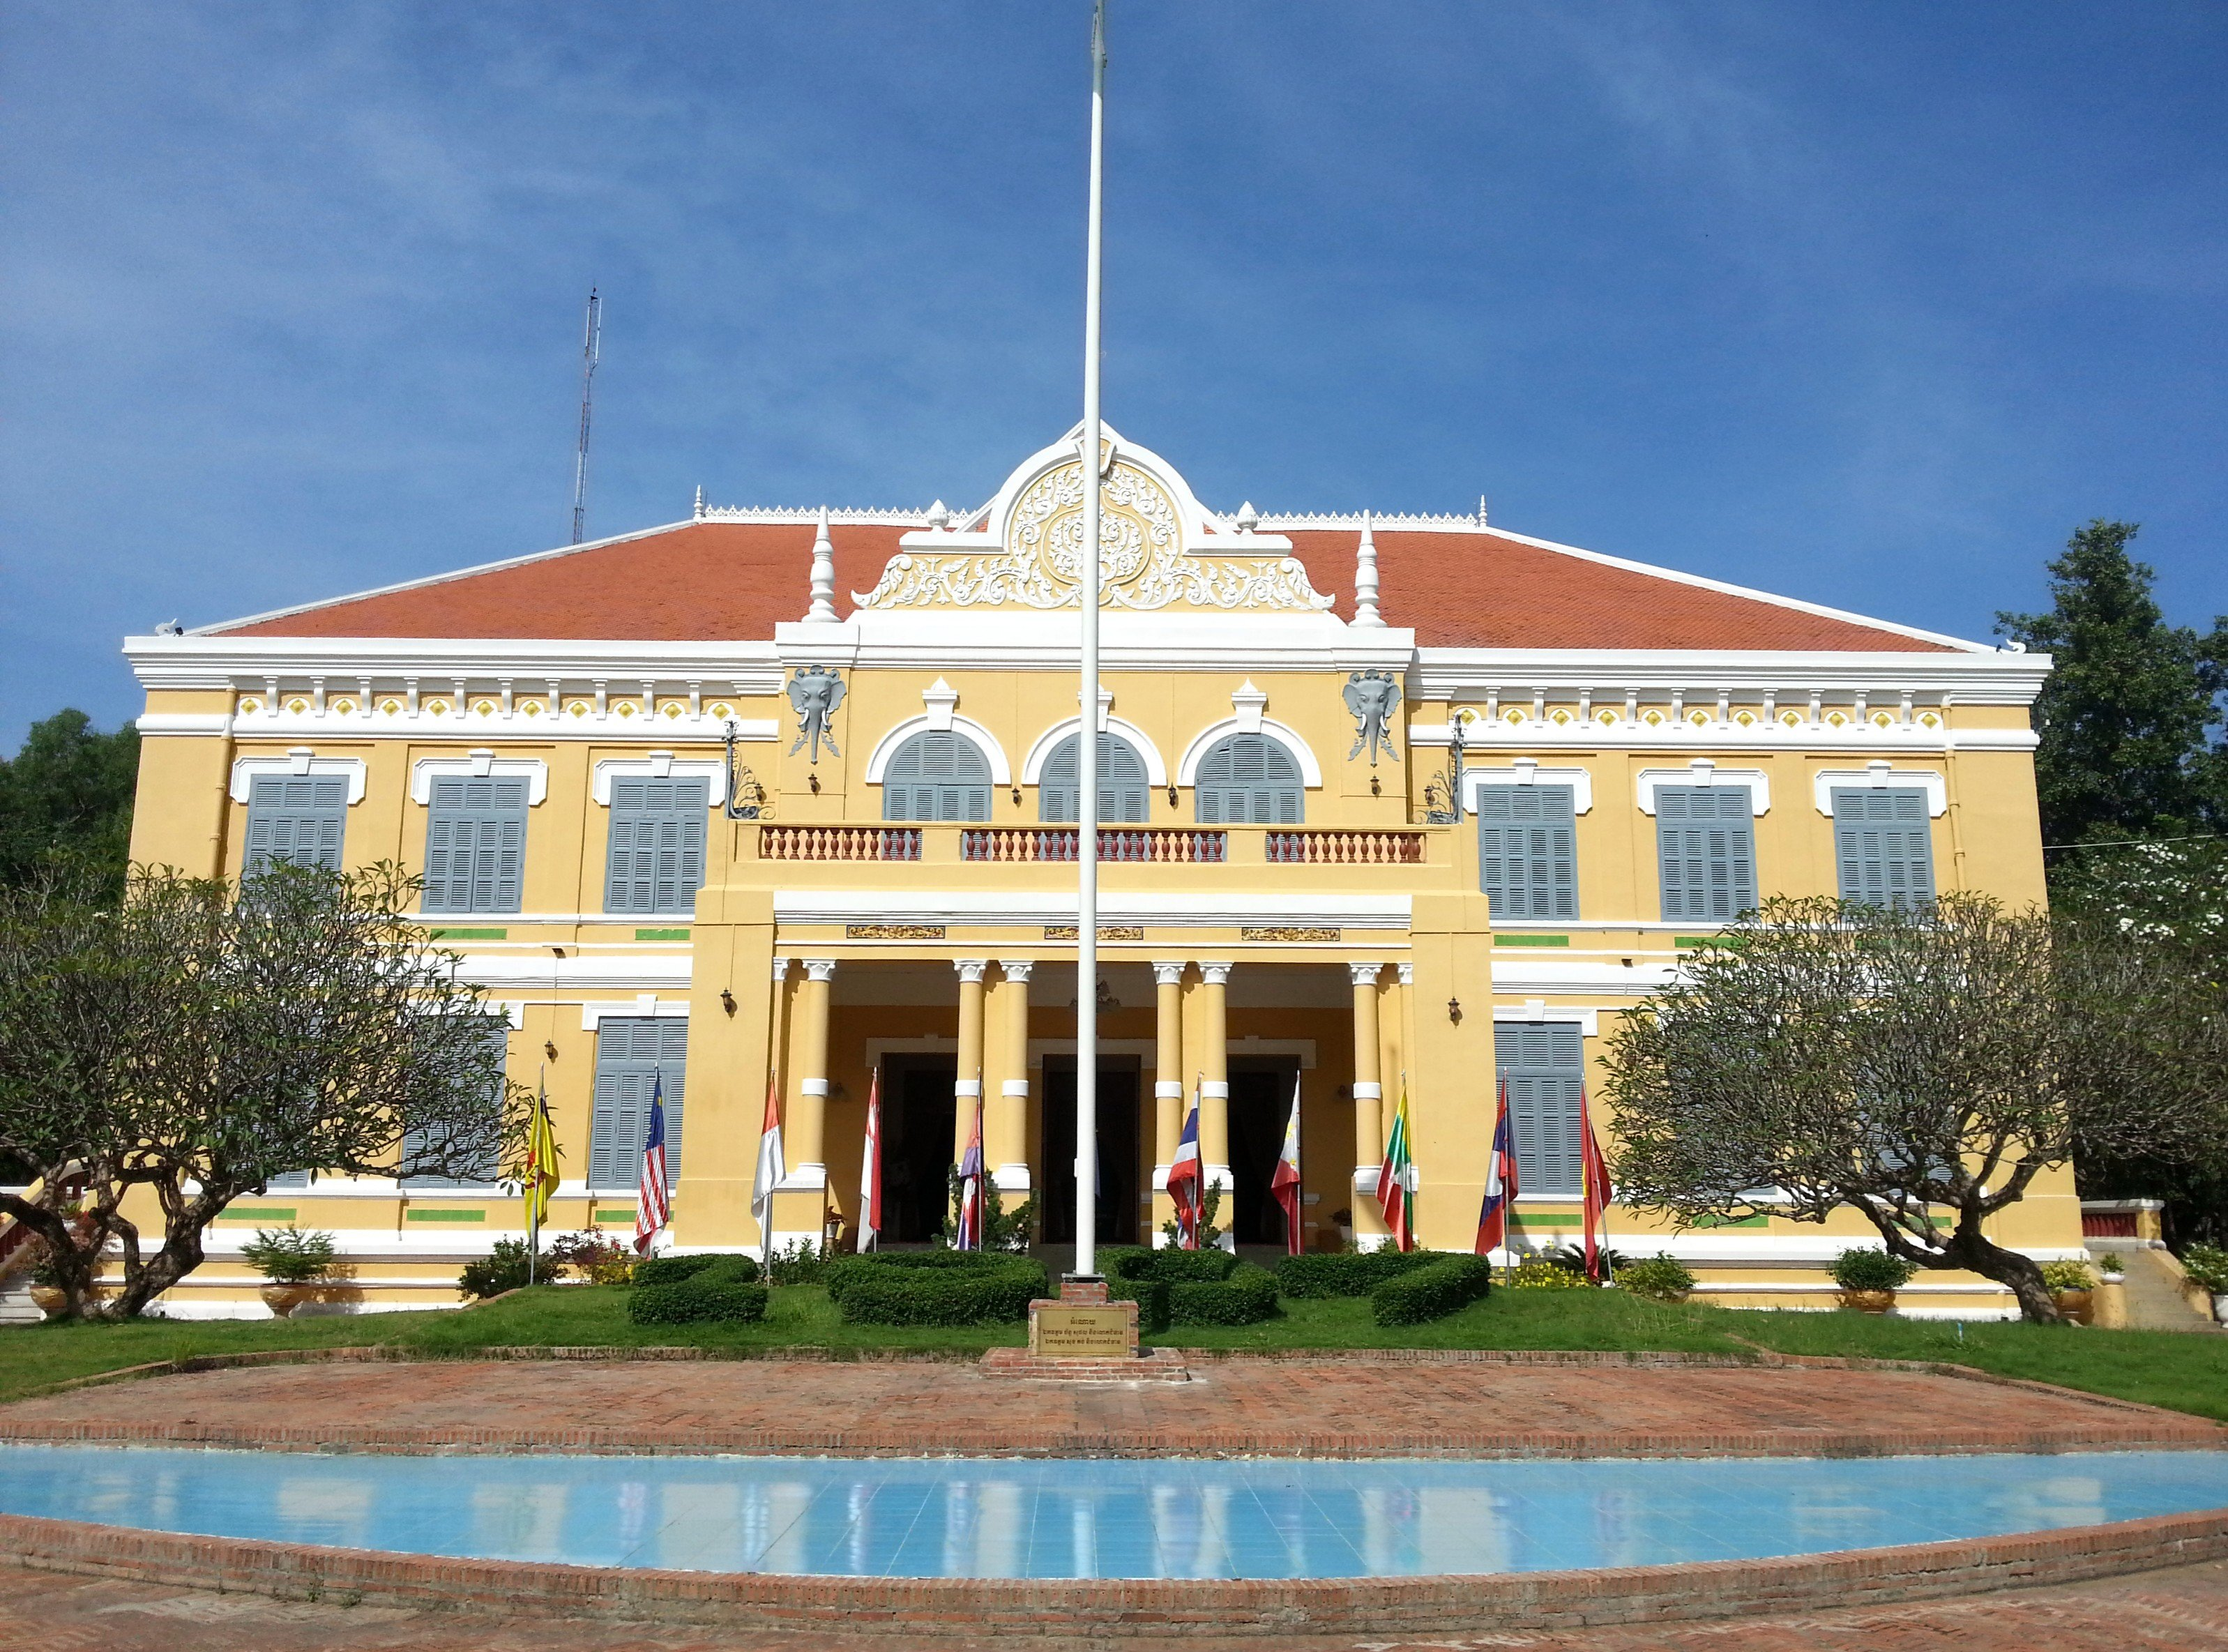 Governor's Residence in Battambang